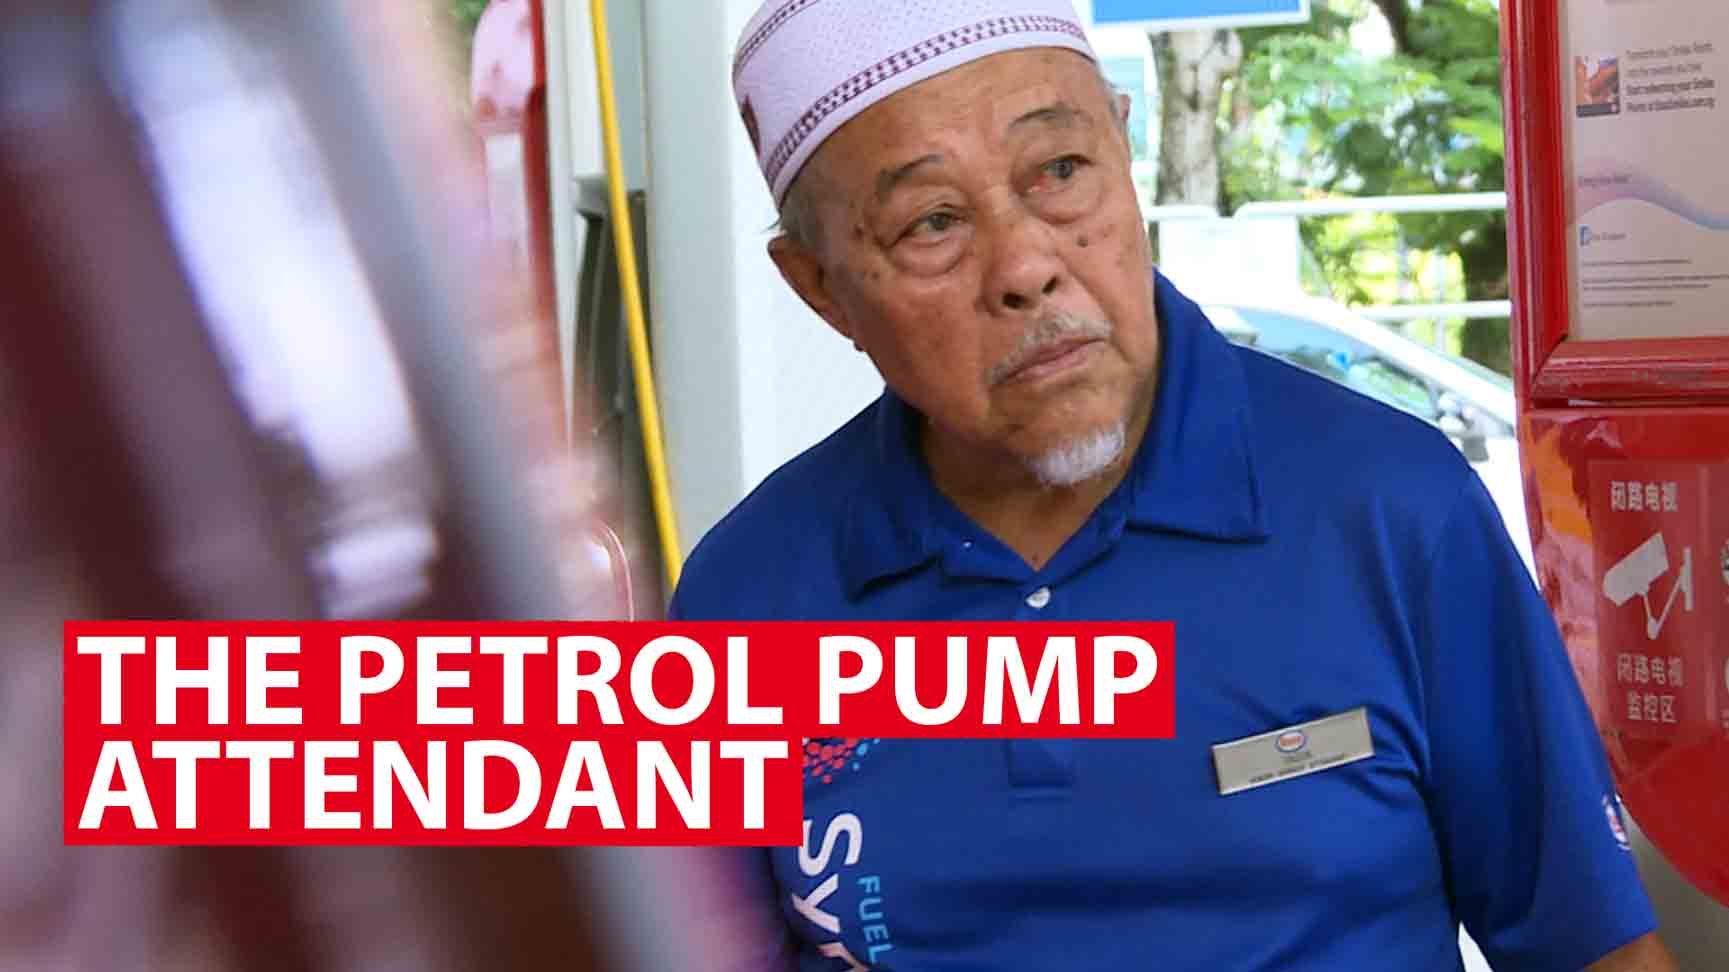 The petrol pump attendant: A 77-year-old's duty to family